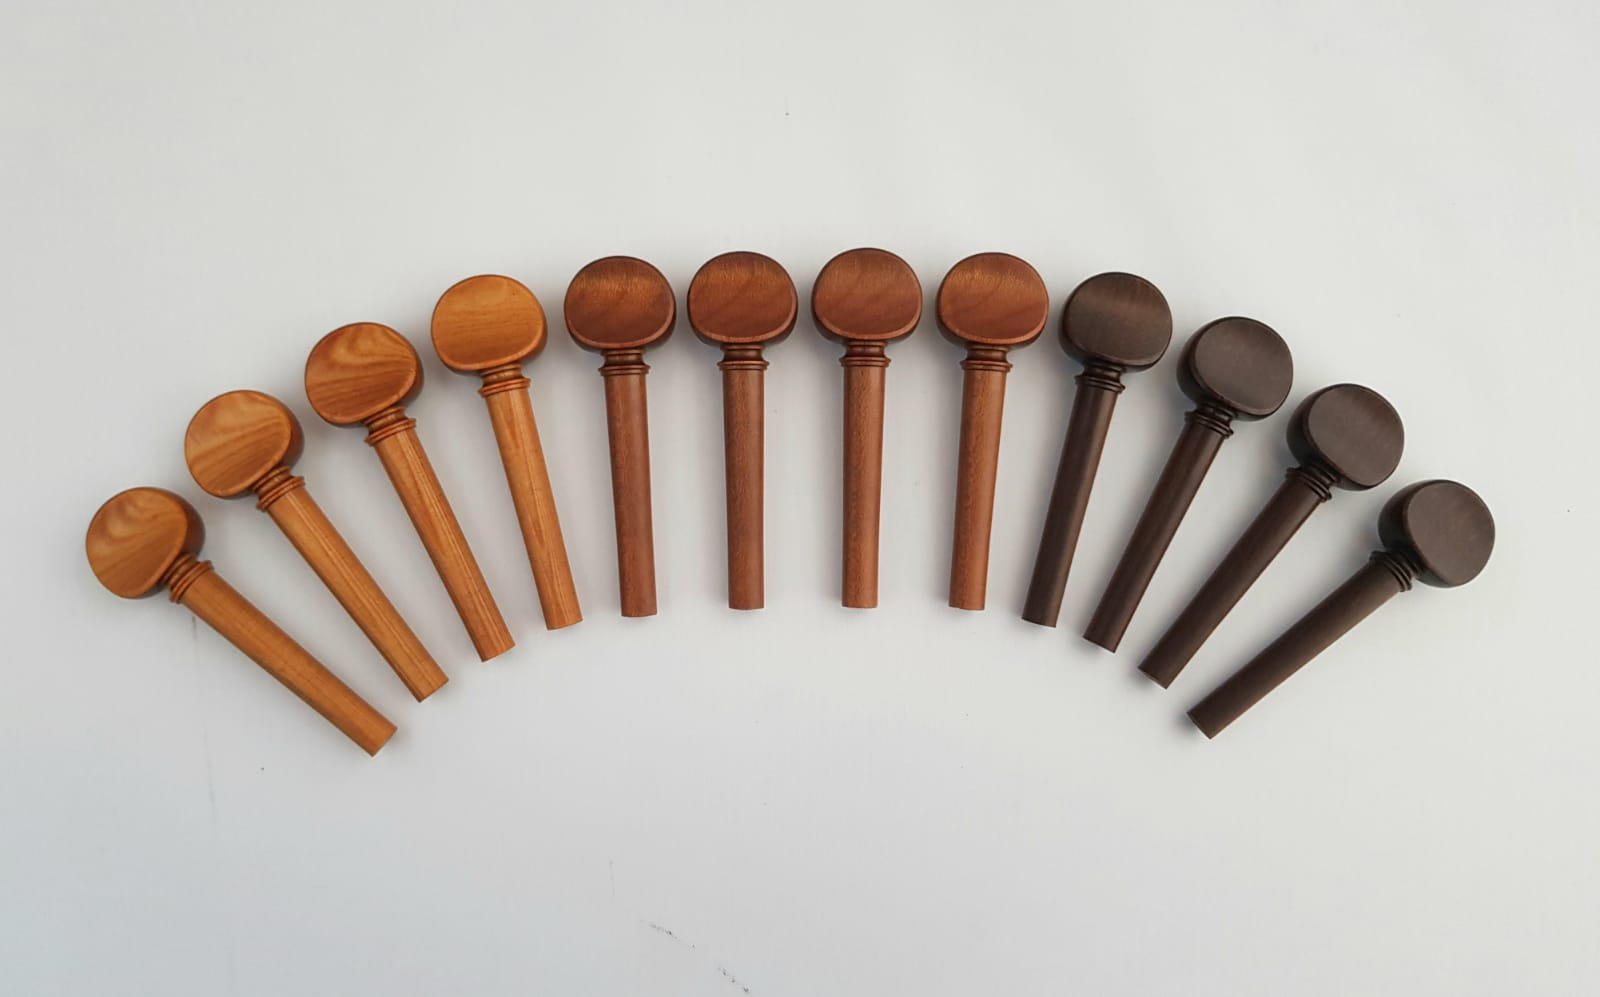 Pegs from Sonowood spruce, maple and walnut made by Berdani Feinste Bestandteile